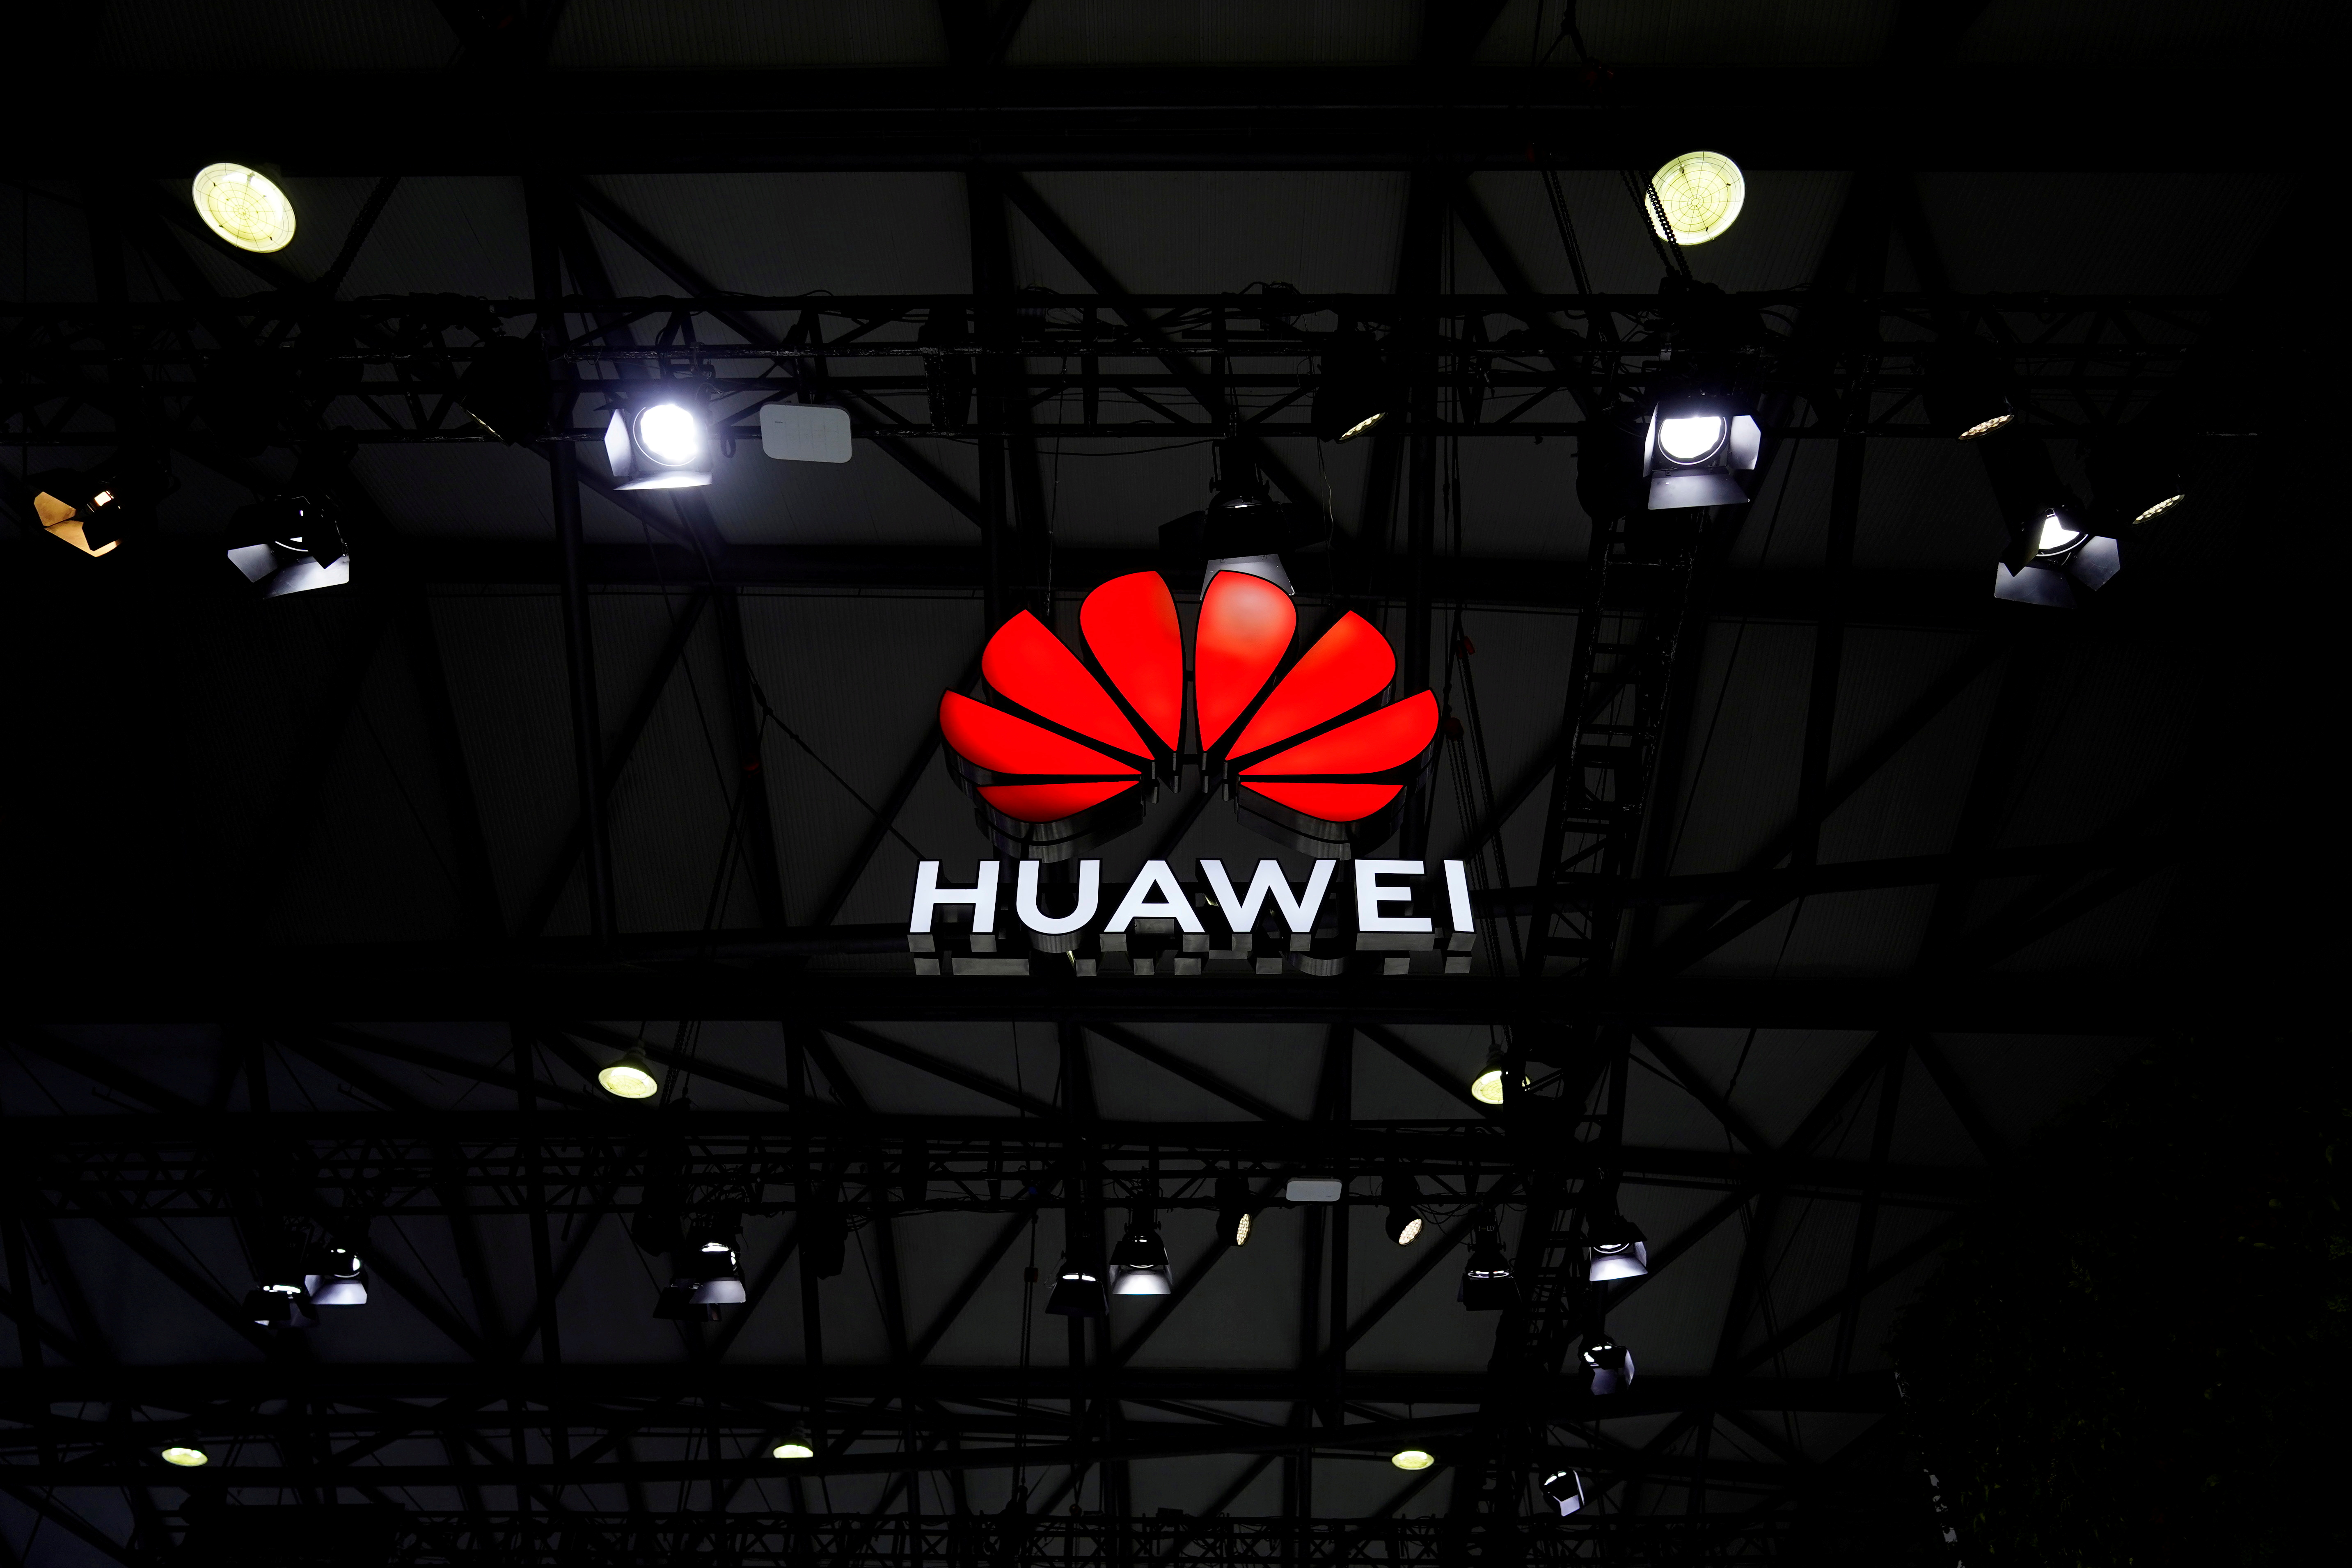 A Huawei logo is seen at the Mobile World Congress (MWC) in Shanghai, China February 23, 2021. REUTERS/Aly Song/File Photo